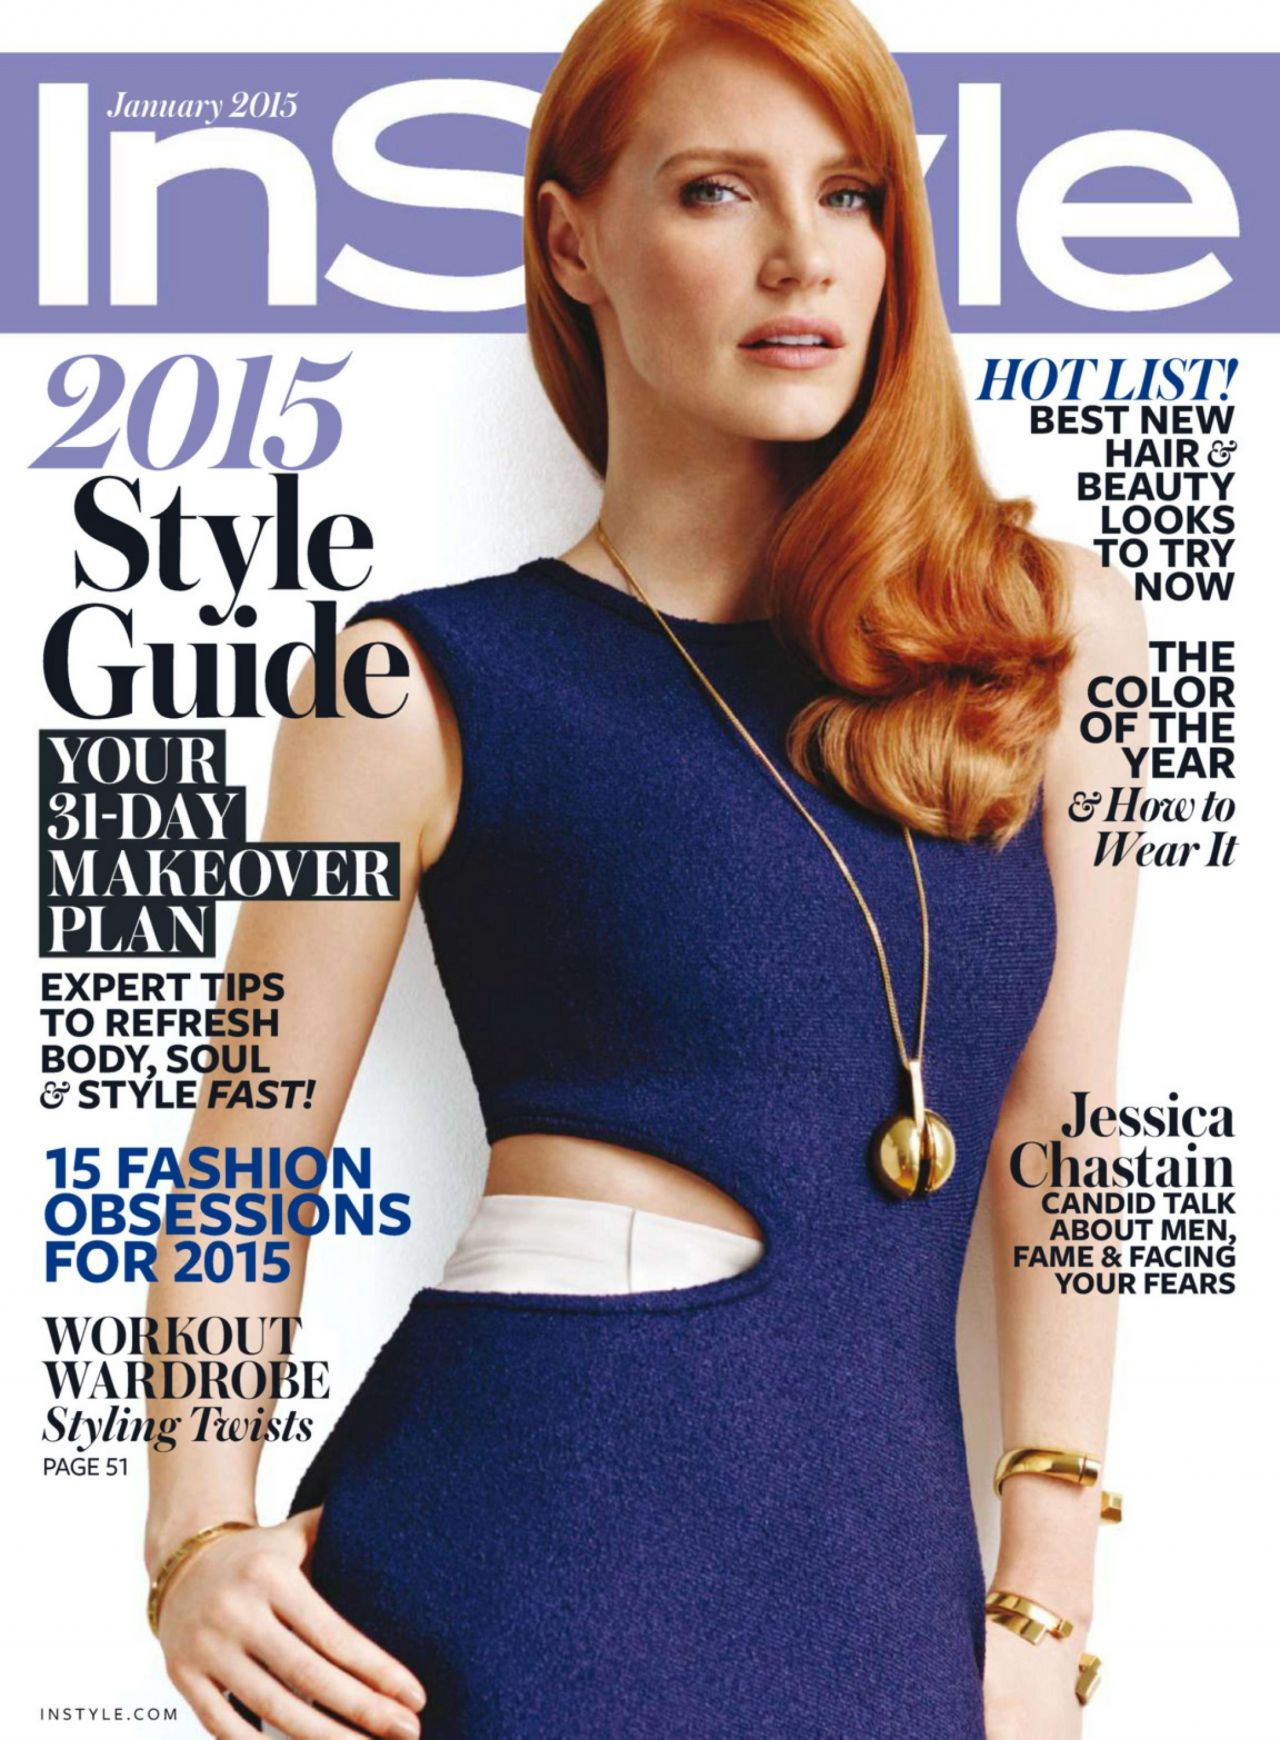 Instyle Magazine Us: January 2015 Issue